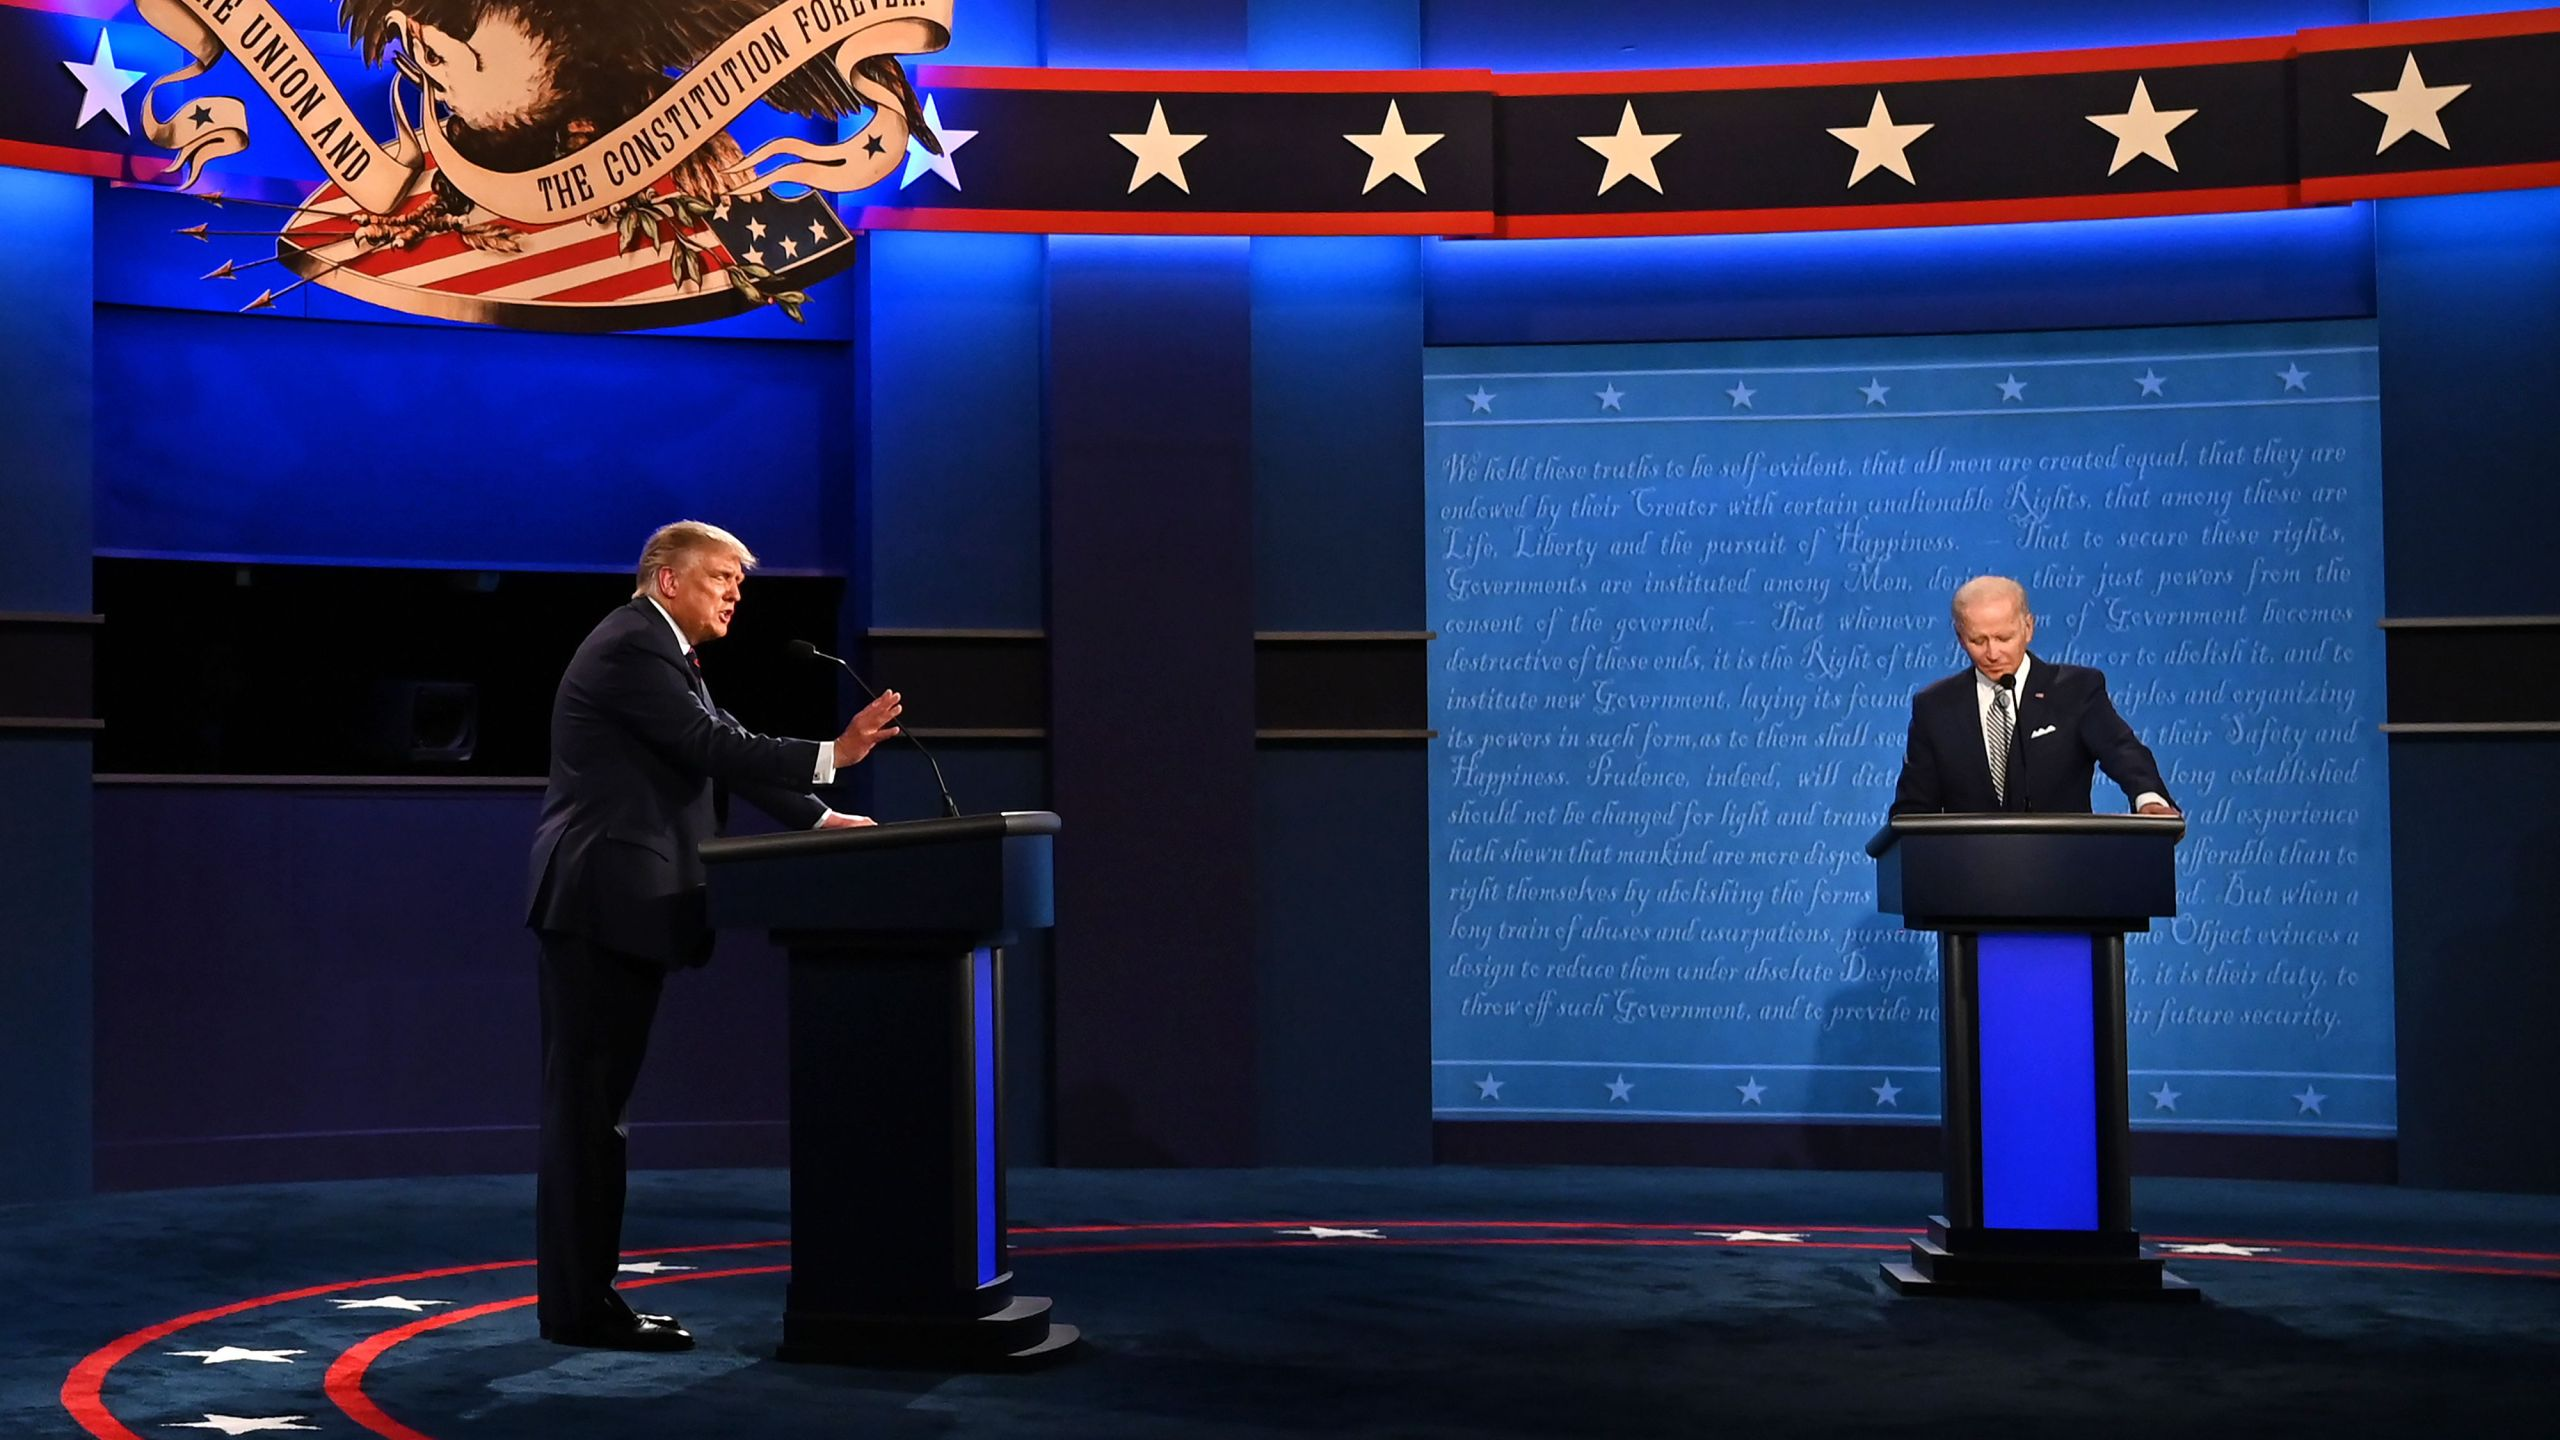 President Donald Trump and former Vice President Joe Biden exchange arguments during the first presidential debate at the Case Western Reserve University and Cleveland Clinic in Cleveland, Ohio on Sept. 29, 2020. (JIM WATSON/AFP via Getty Images)